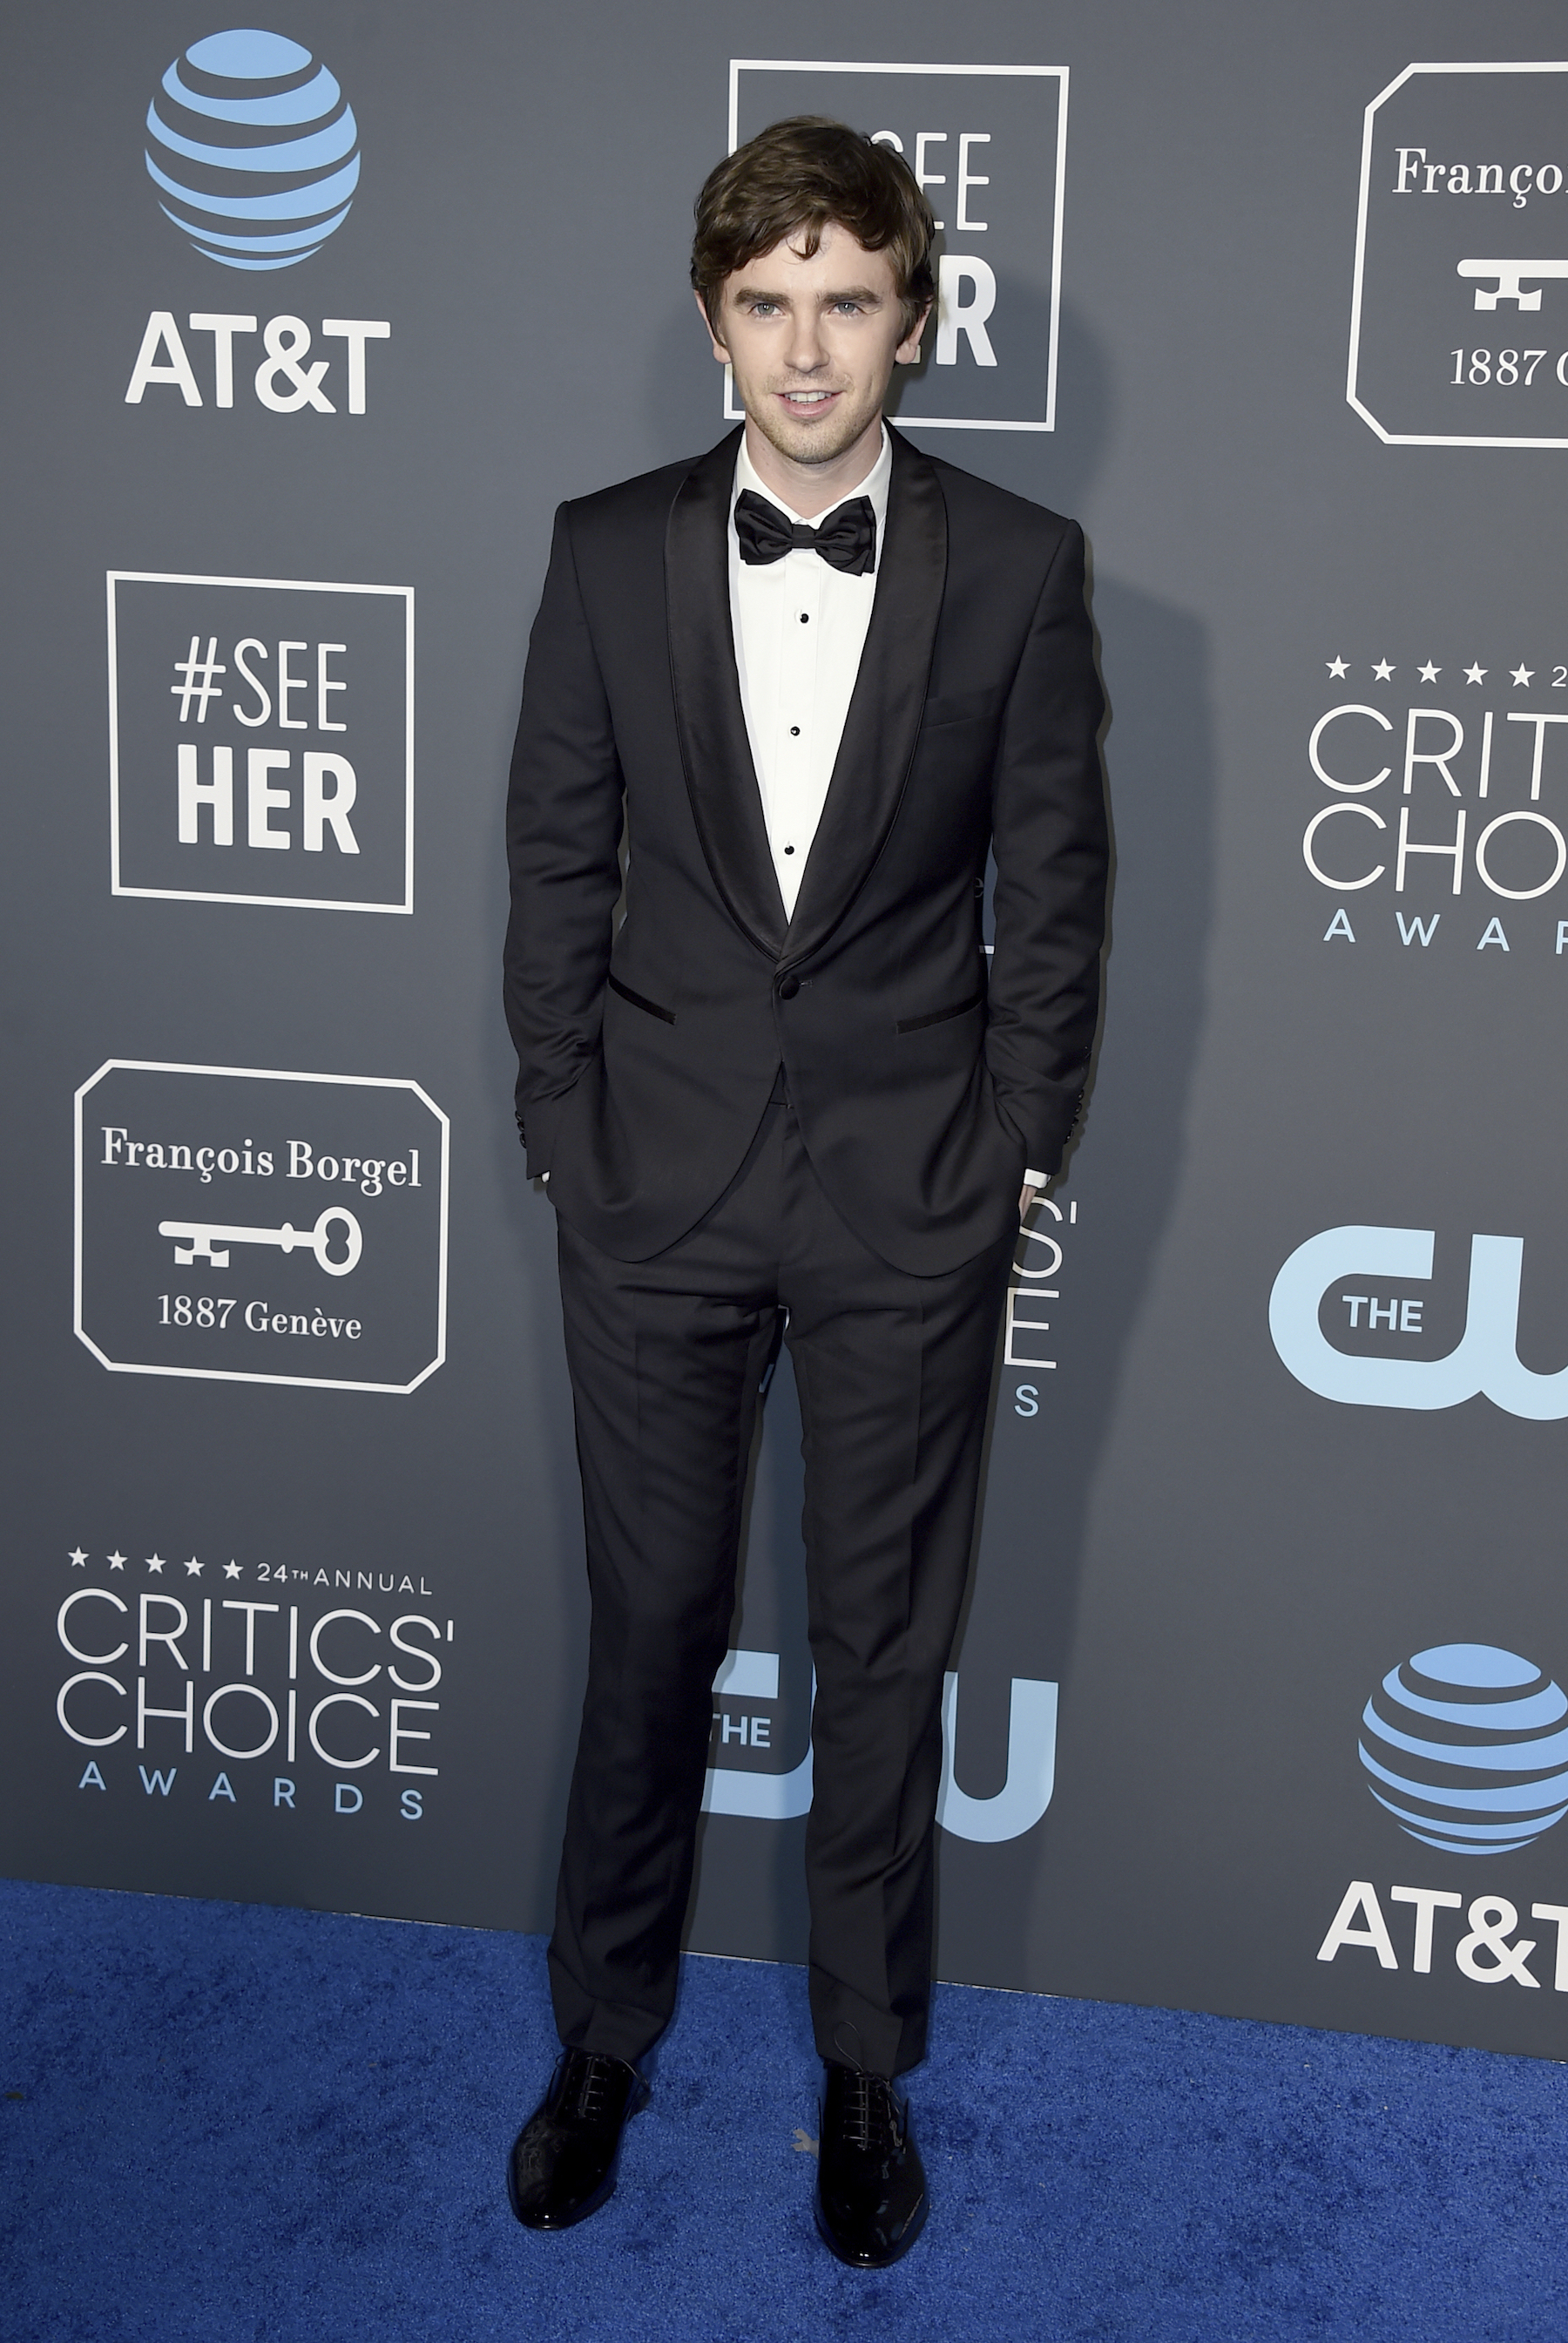 "<div class=""meta image-caption""><div class=""origin-logo origin-image ap""><span>AP</span></div><span class=""caption-text"">Freddie Highmore arrives at the 24th annual Critics' Choice Awards on Sunday, Jan. 13, 2019, at the Barker Hangar in Santa Monica, Calif. (Jordan Strauss/Invision/AP)</span></div>"